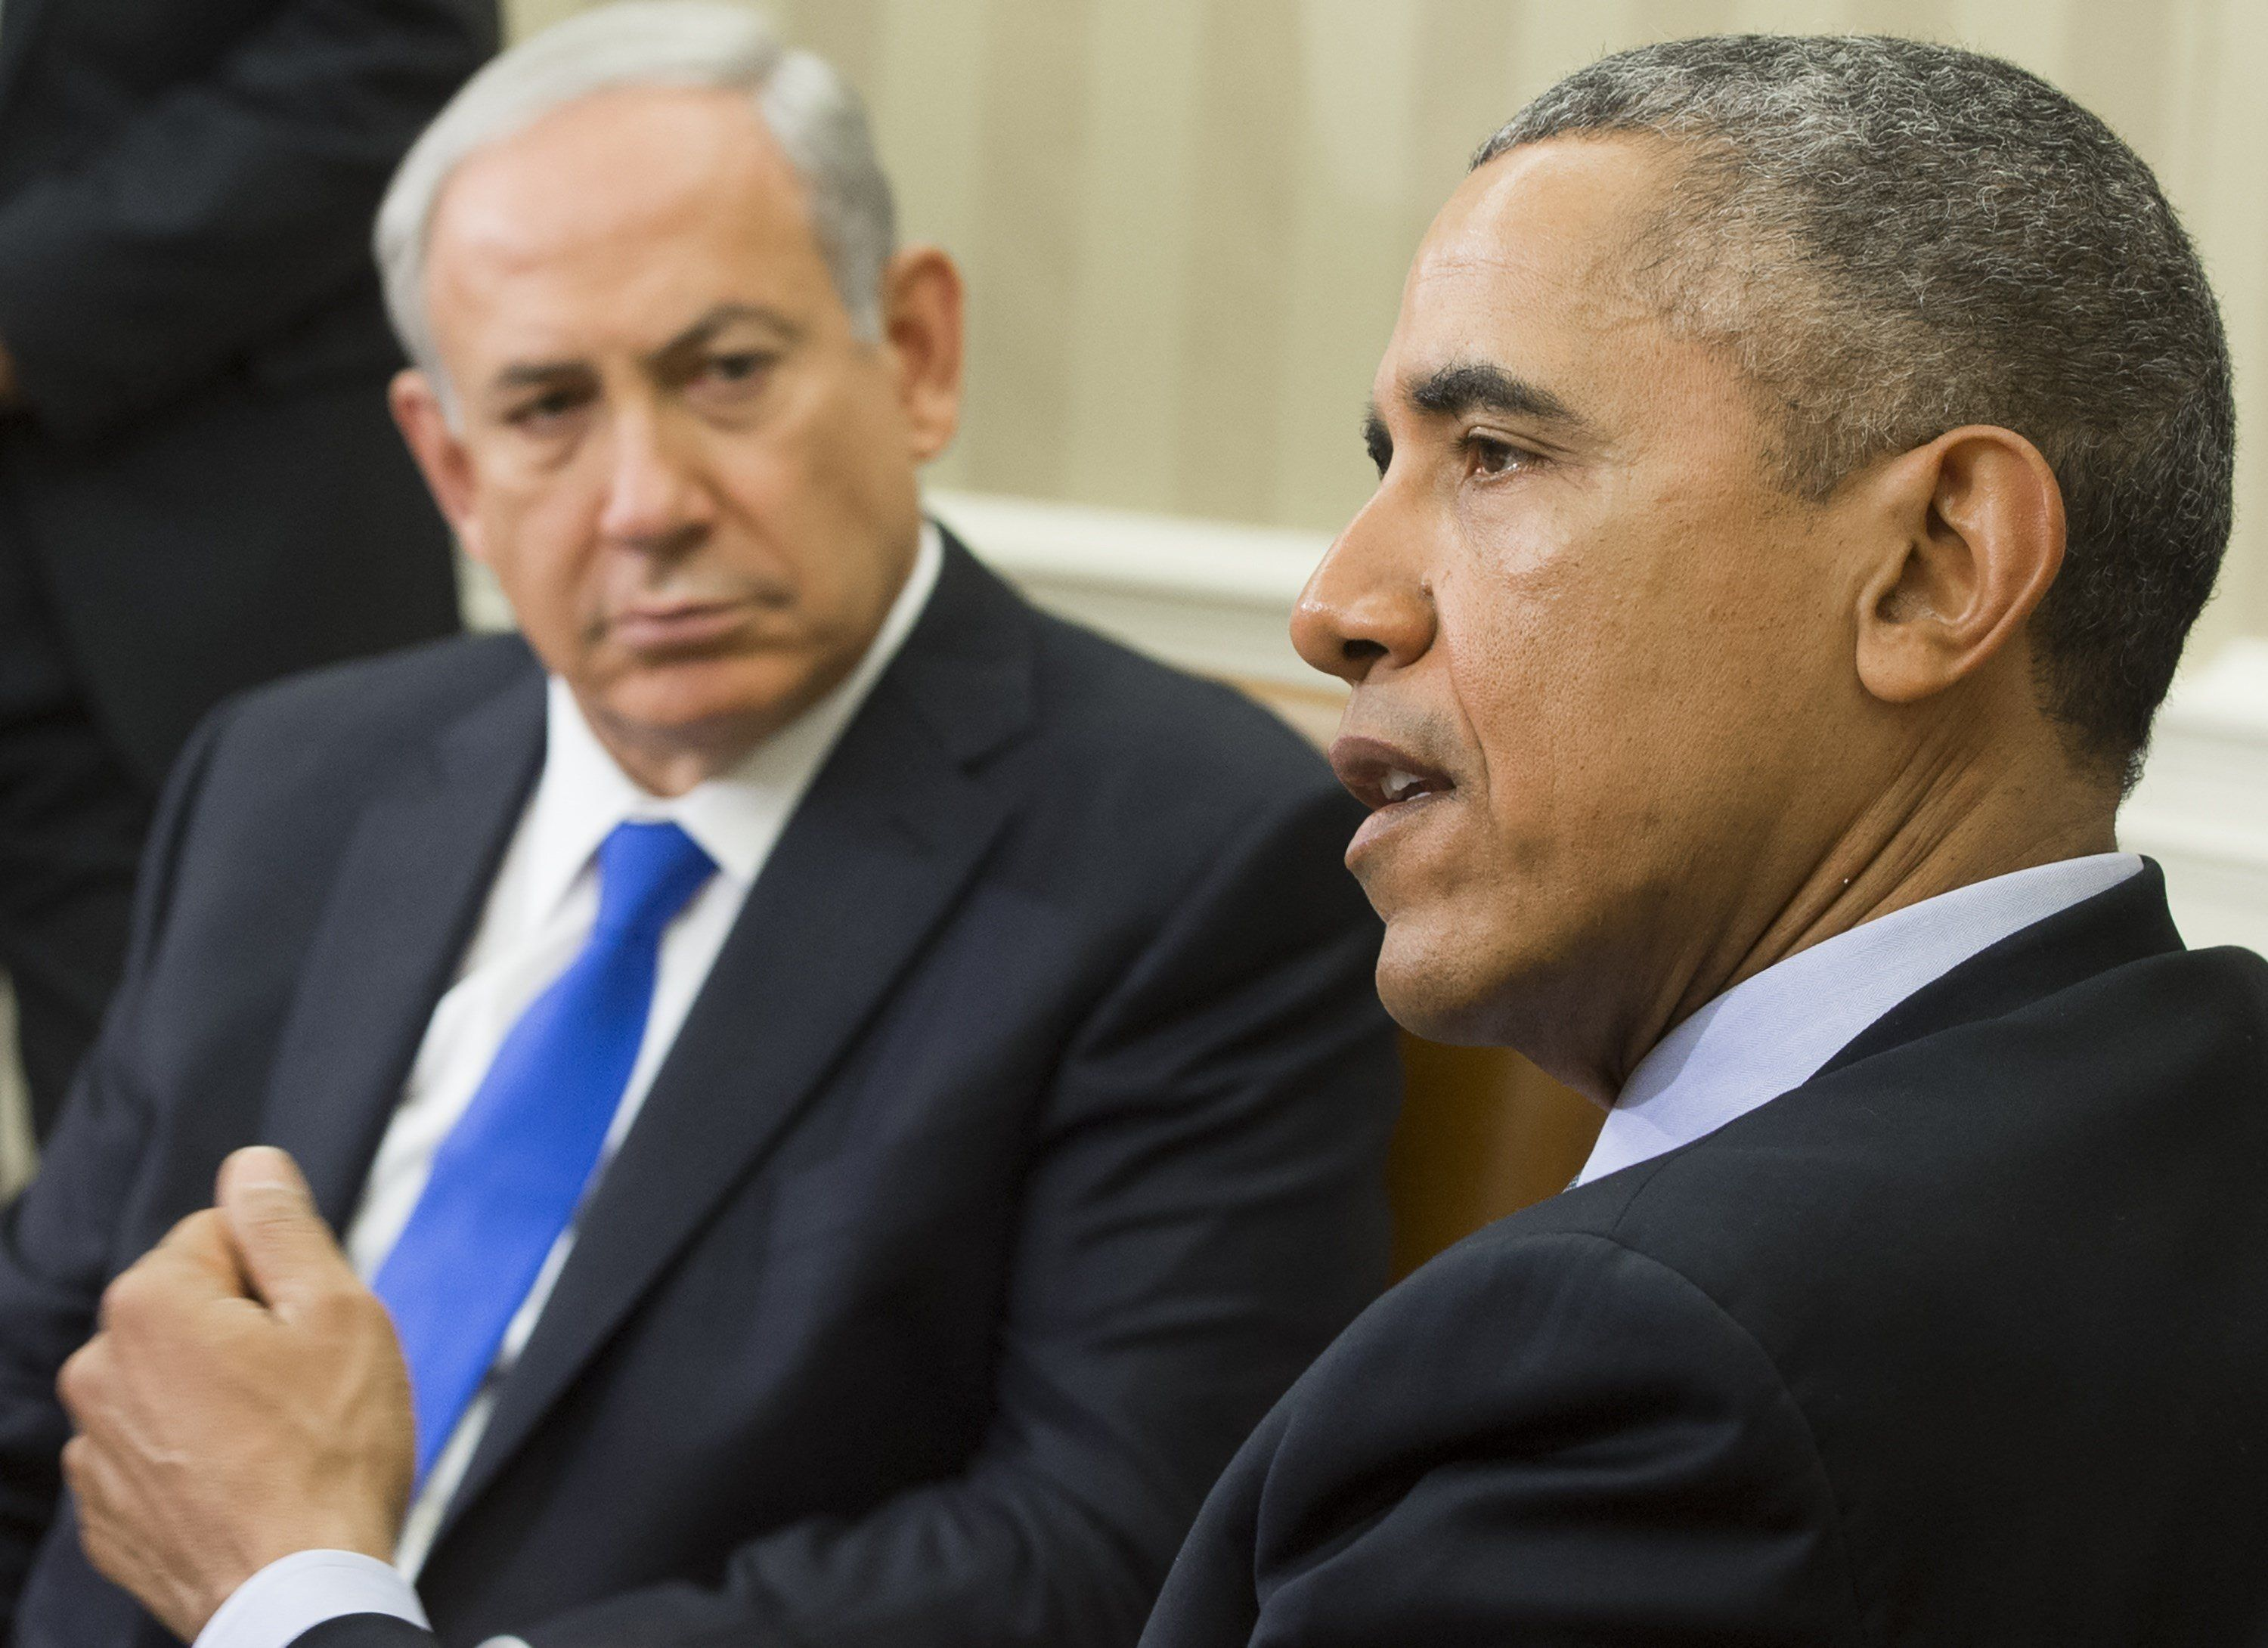 Obama and Netanyahu met at the White House on Monday.